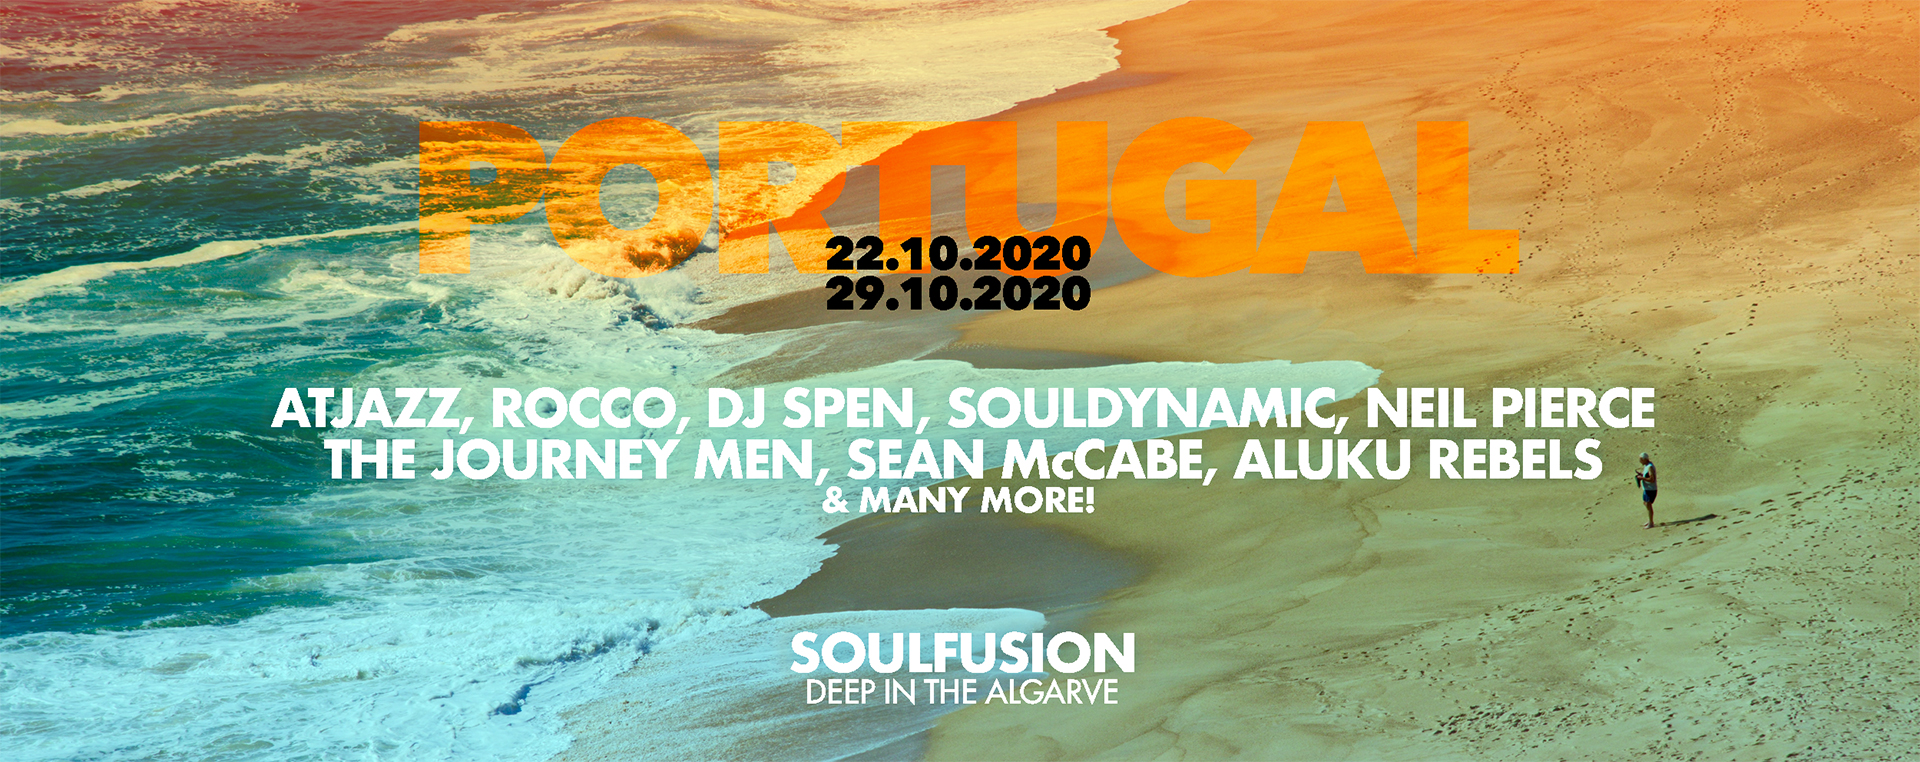 Soulfusion Deep in the Argarve